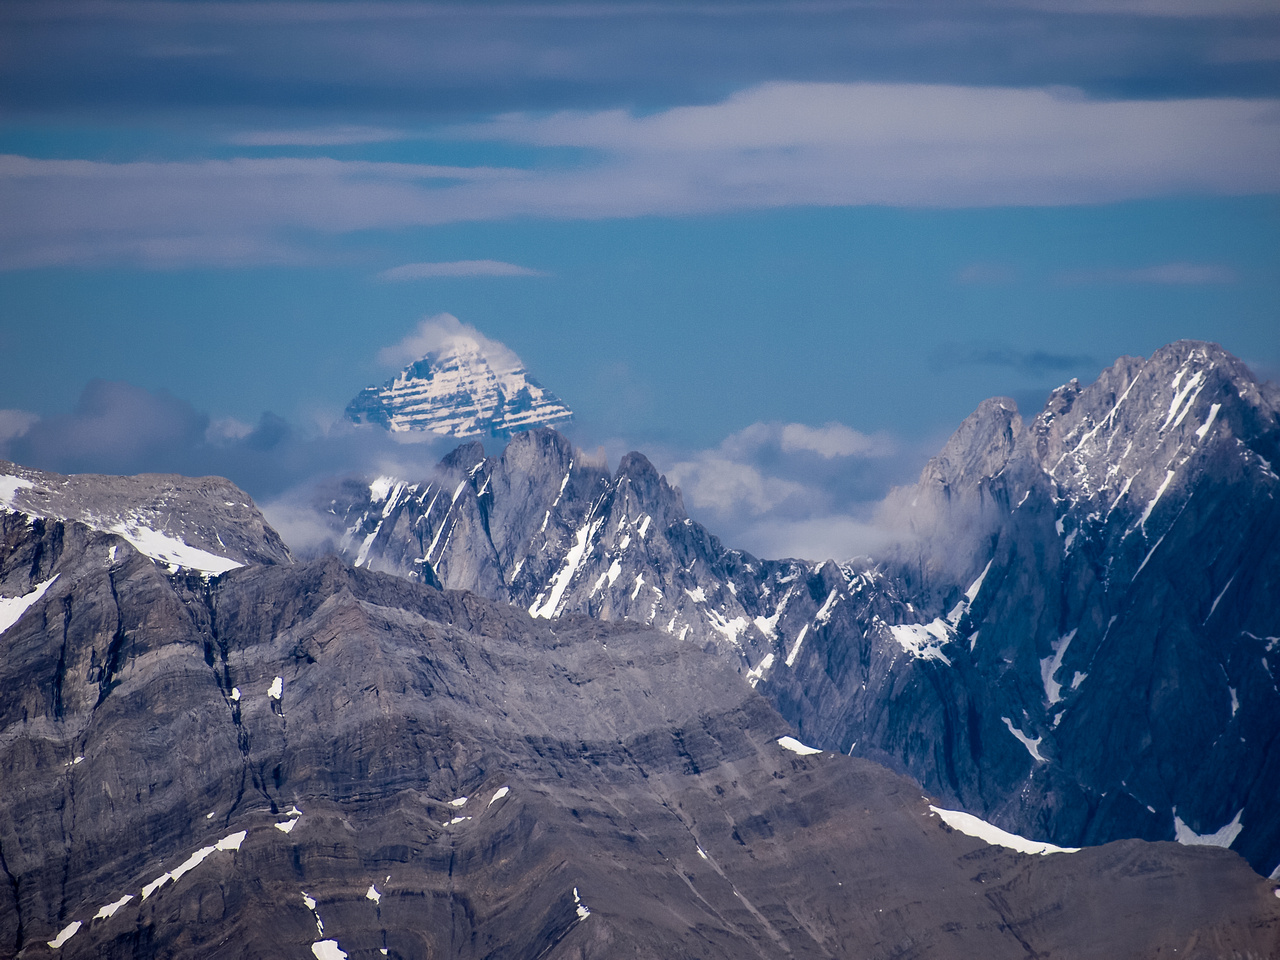 Incredibly, even Mount Assiniboine shows up!